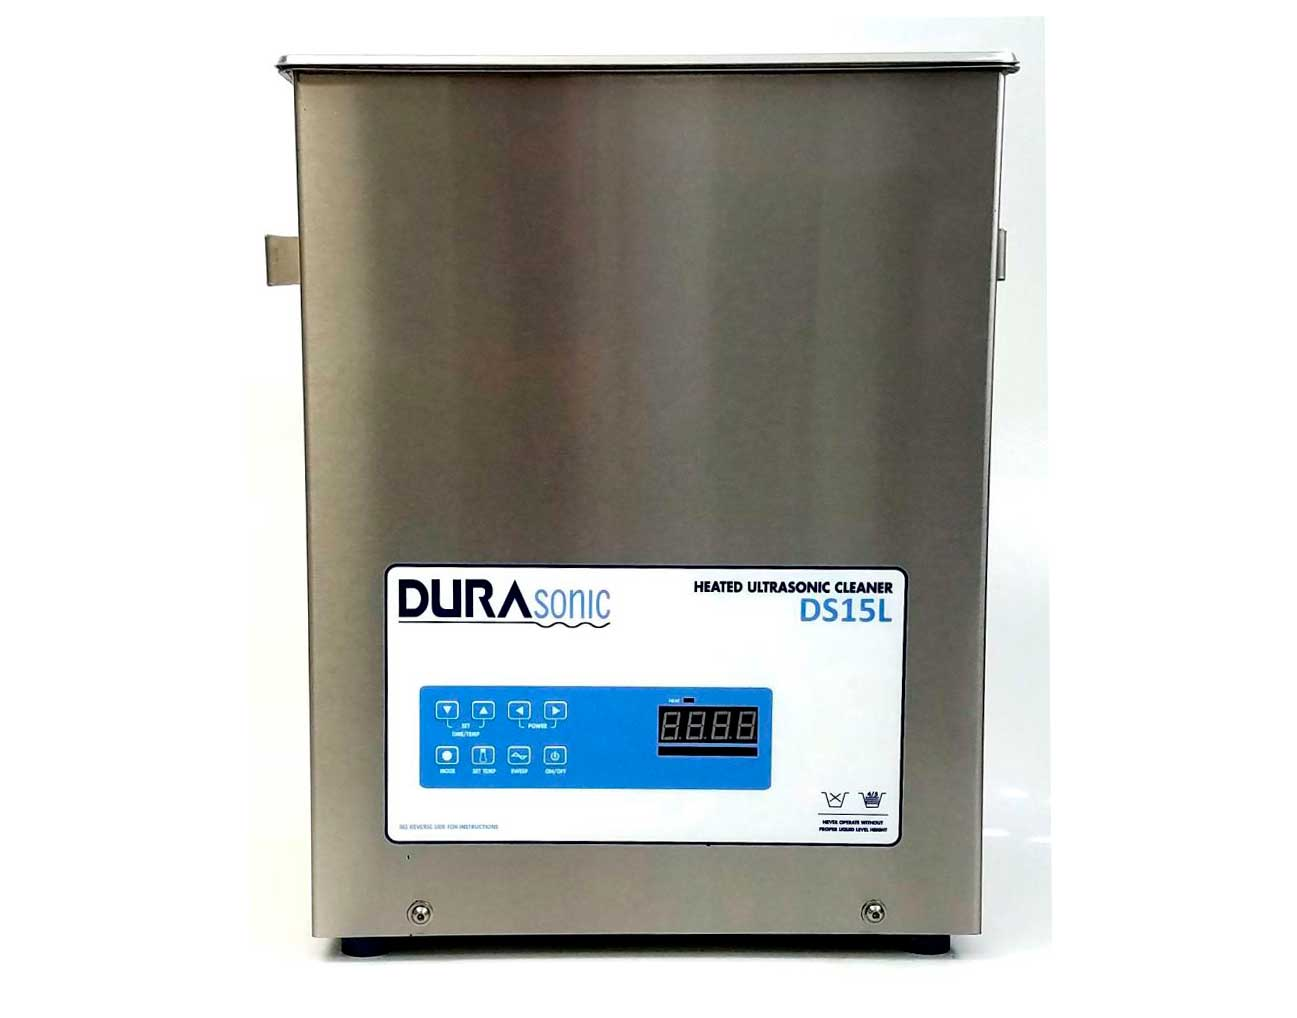 DuraSonic 4 Gal Digital Ultrasonic Cleaner